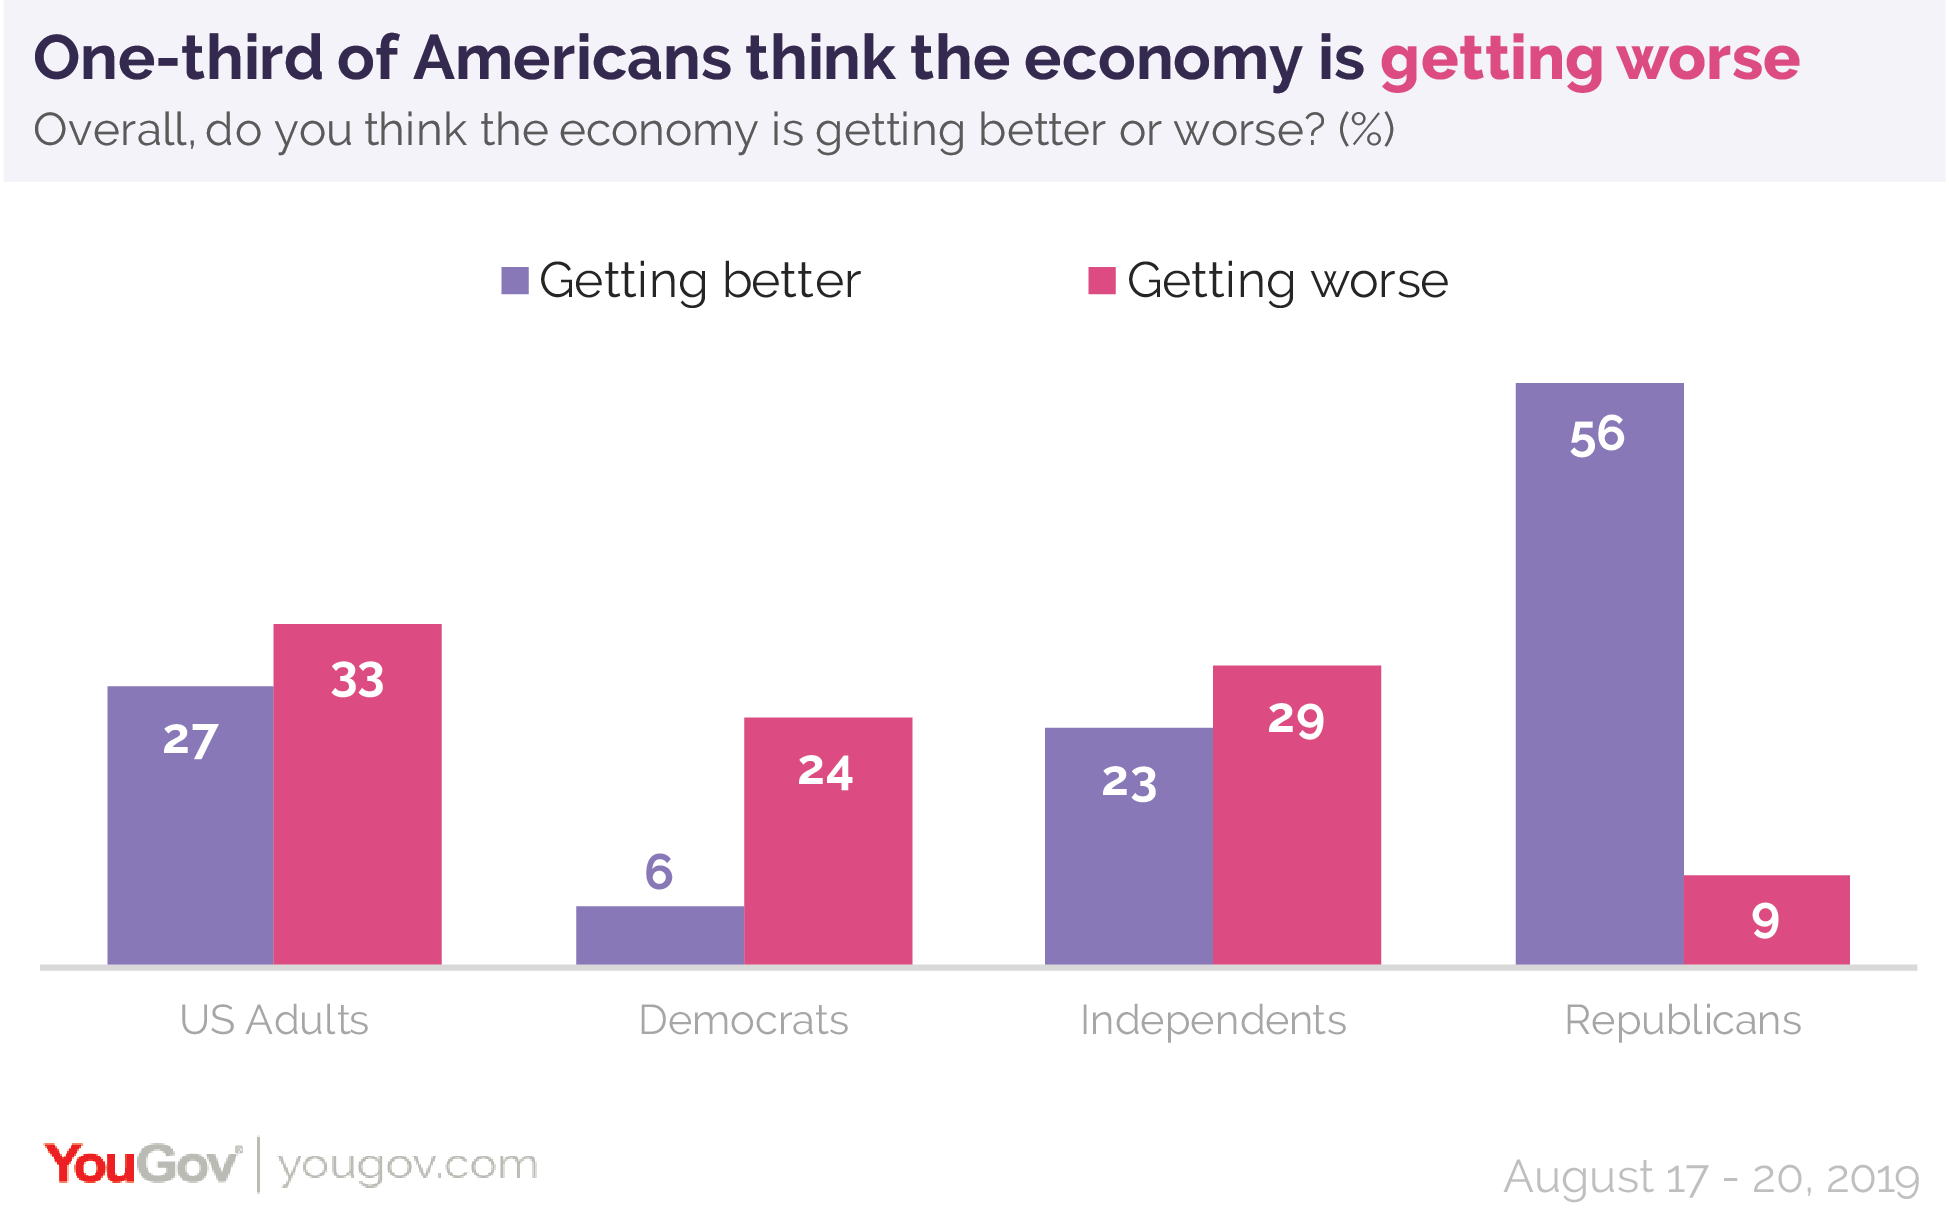 This week, one-third of Americans think the economy is getting worse